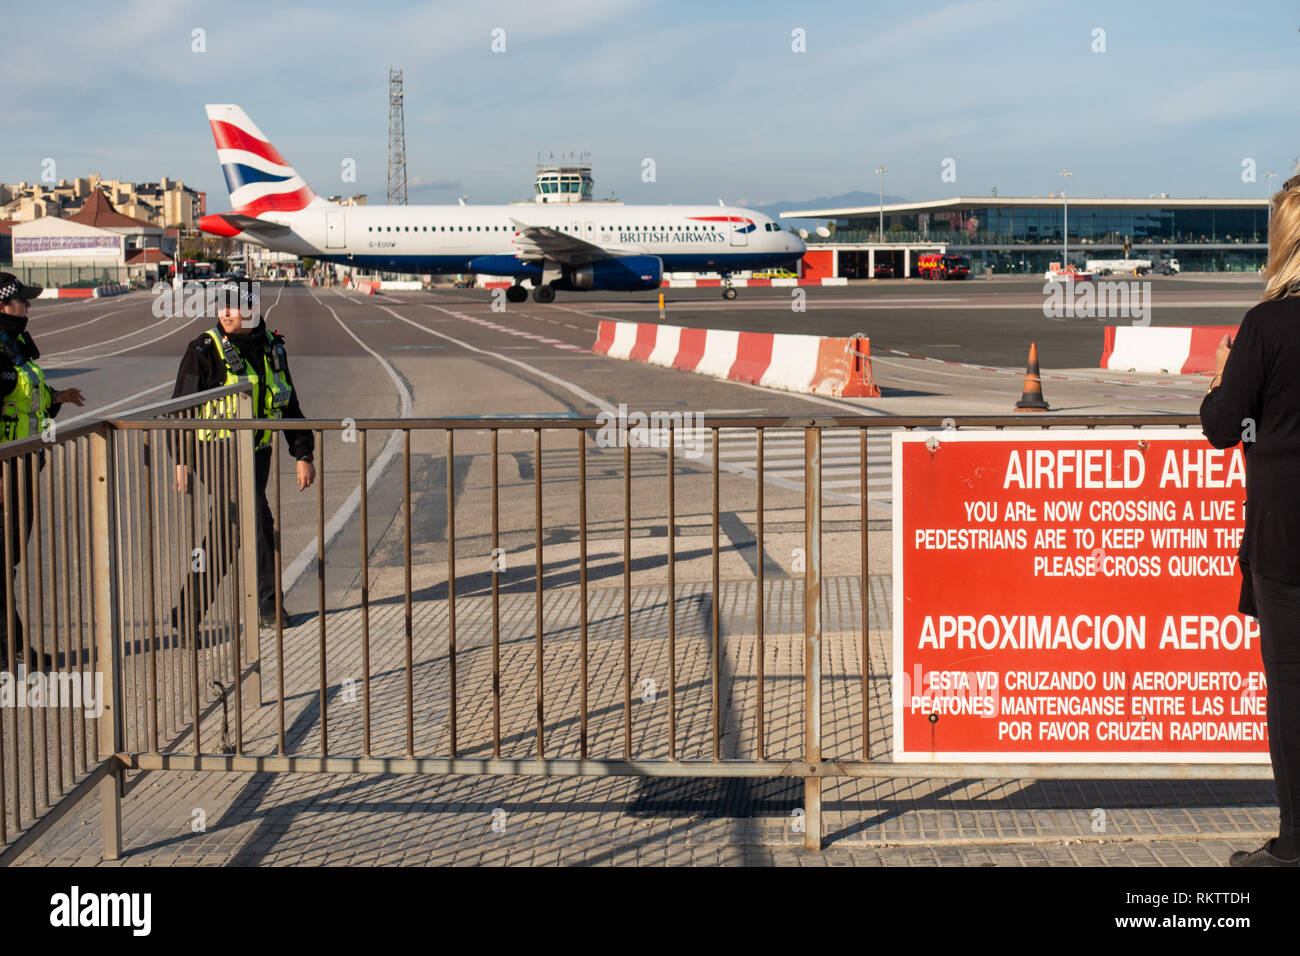 a British Airways Airbus A320 crosses the runway while traffic and pedestrians wait, at the famous airport crossing in Gibraltar Stock Photo